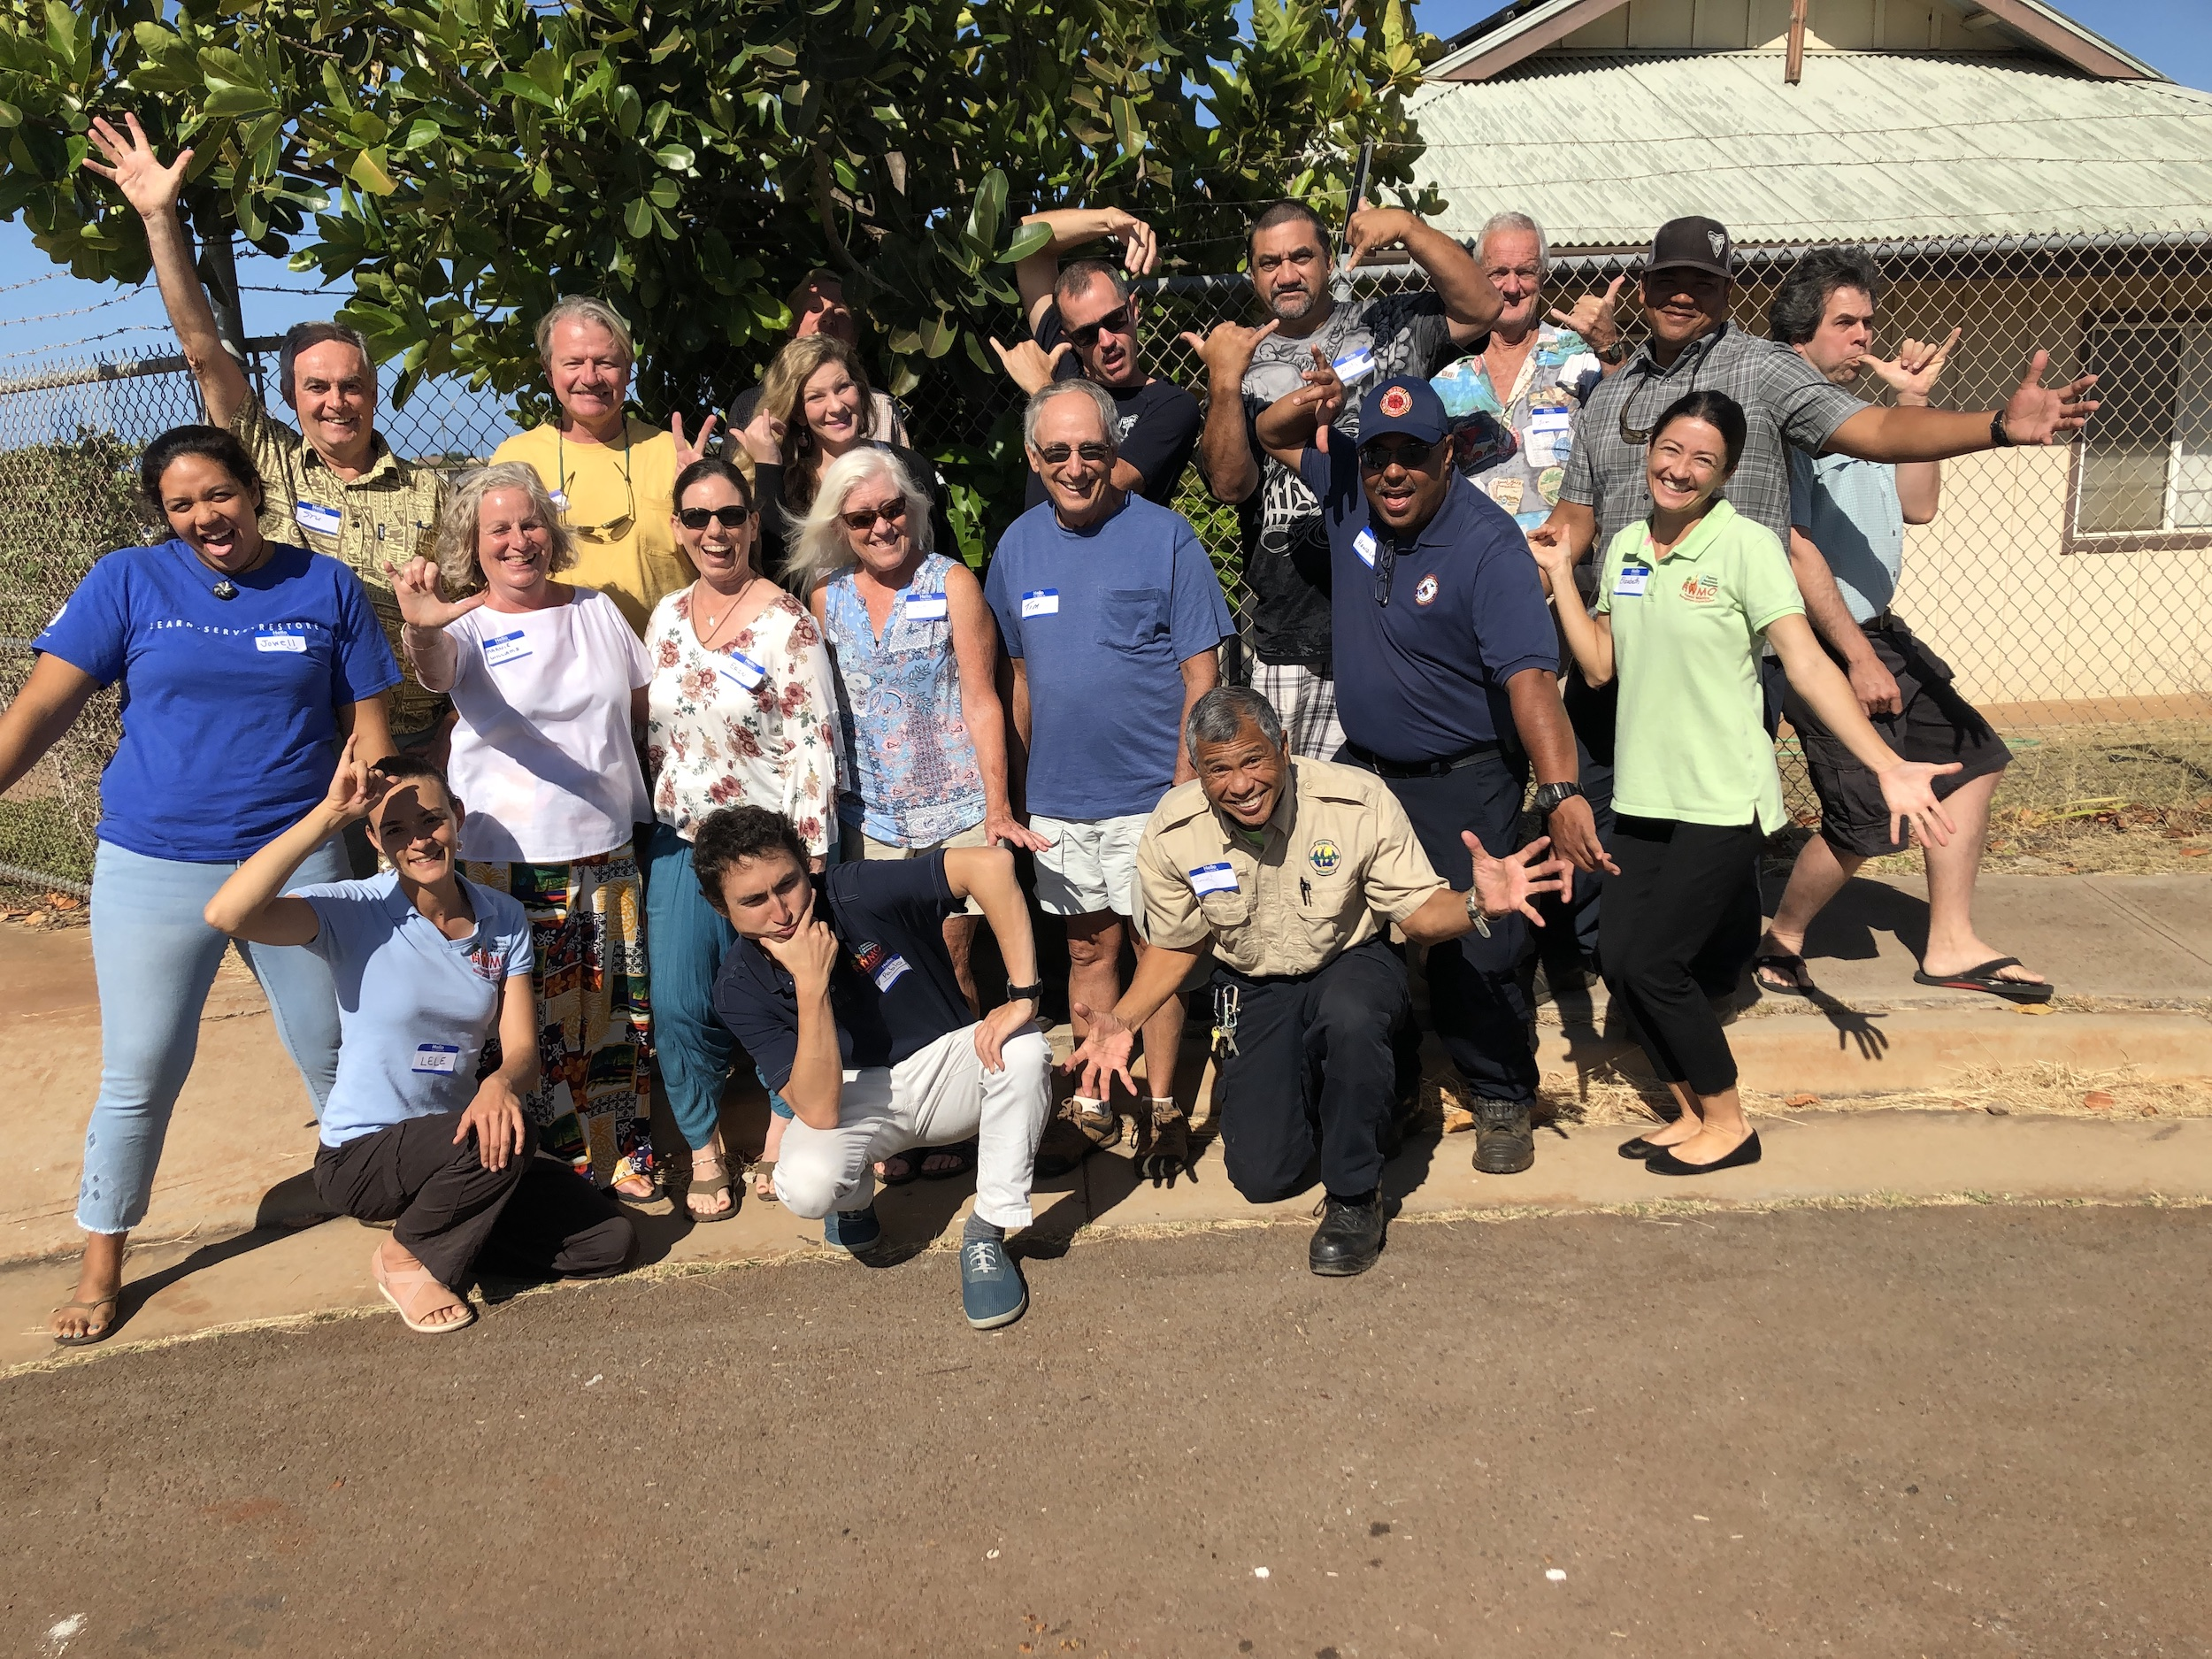 Molokai Vegetative Fuels Management Collaborative Action Planning and Mapping Workshop_4_2_2019_22.JPG